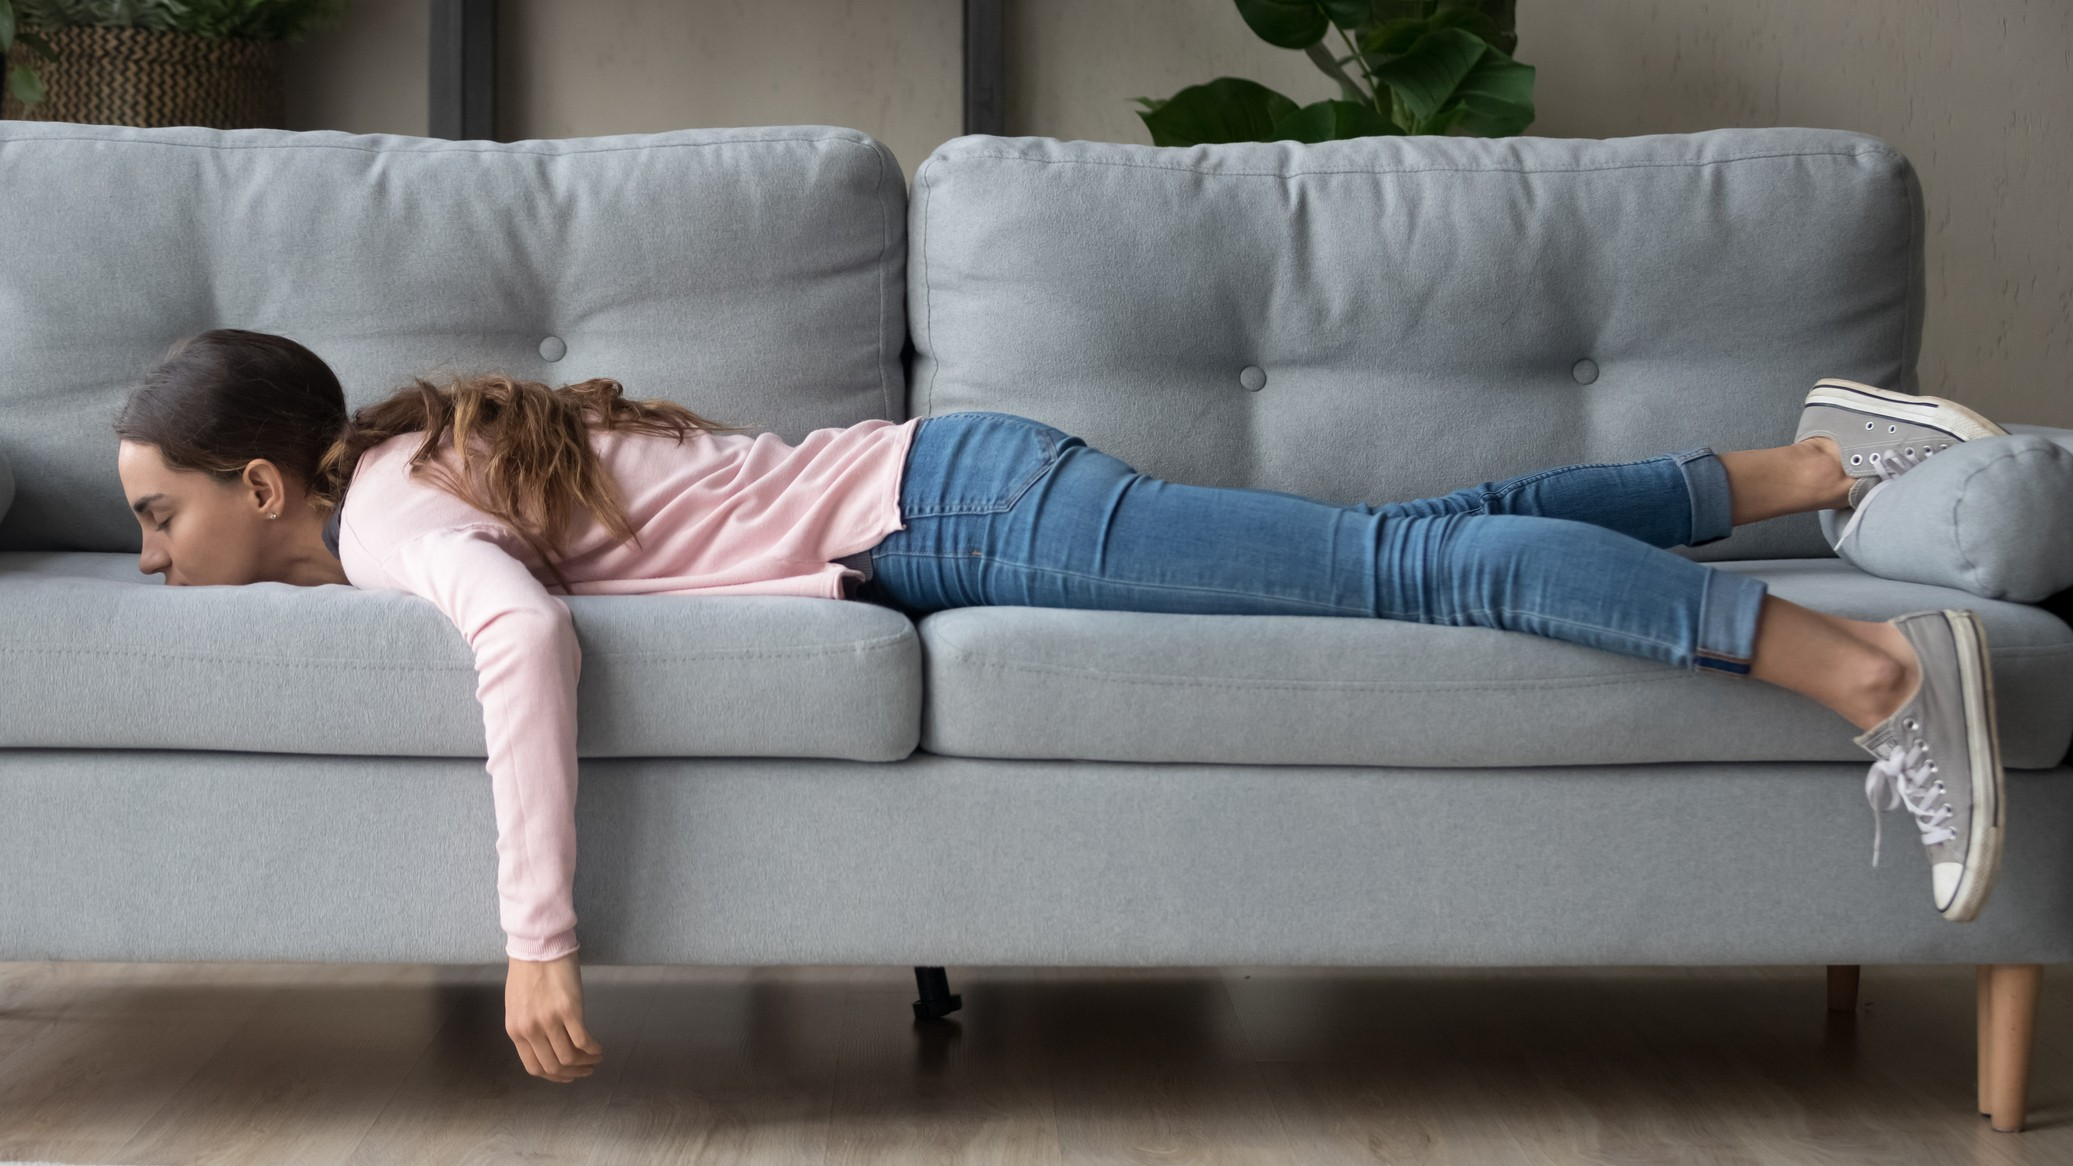 A woman lying face down on the couch, indicating a flat ASX share price